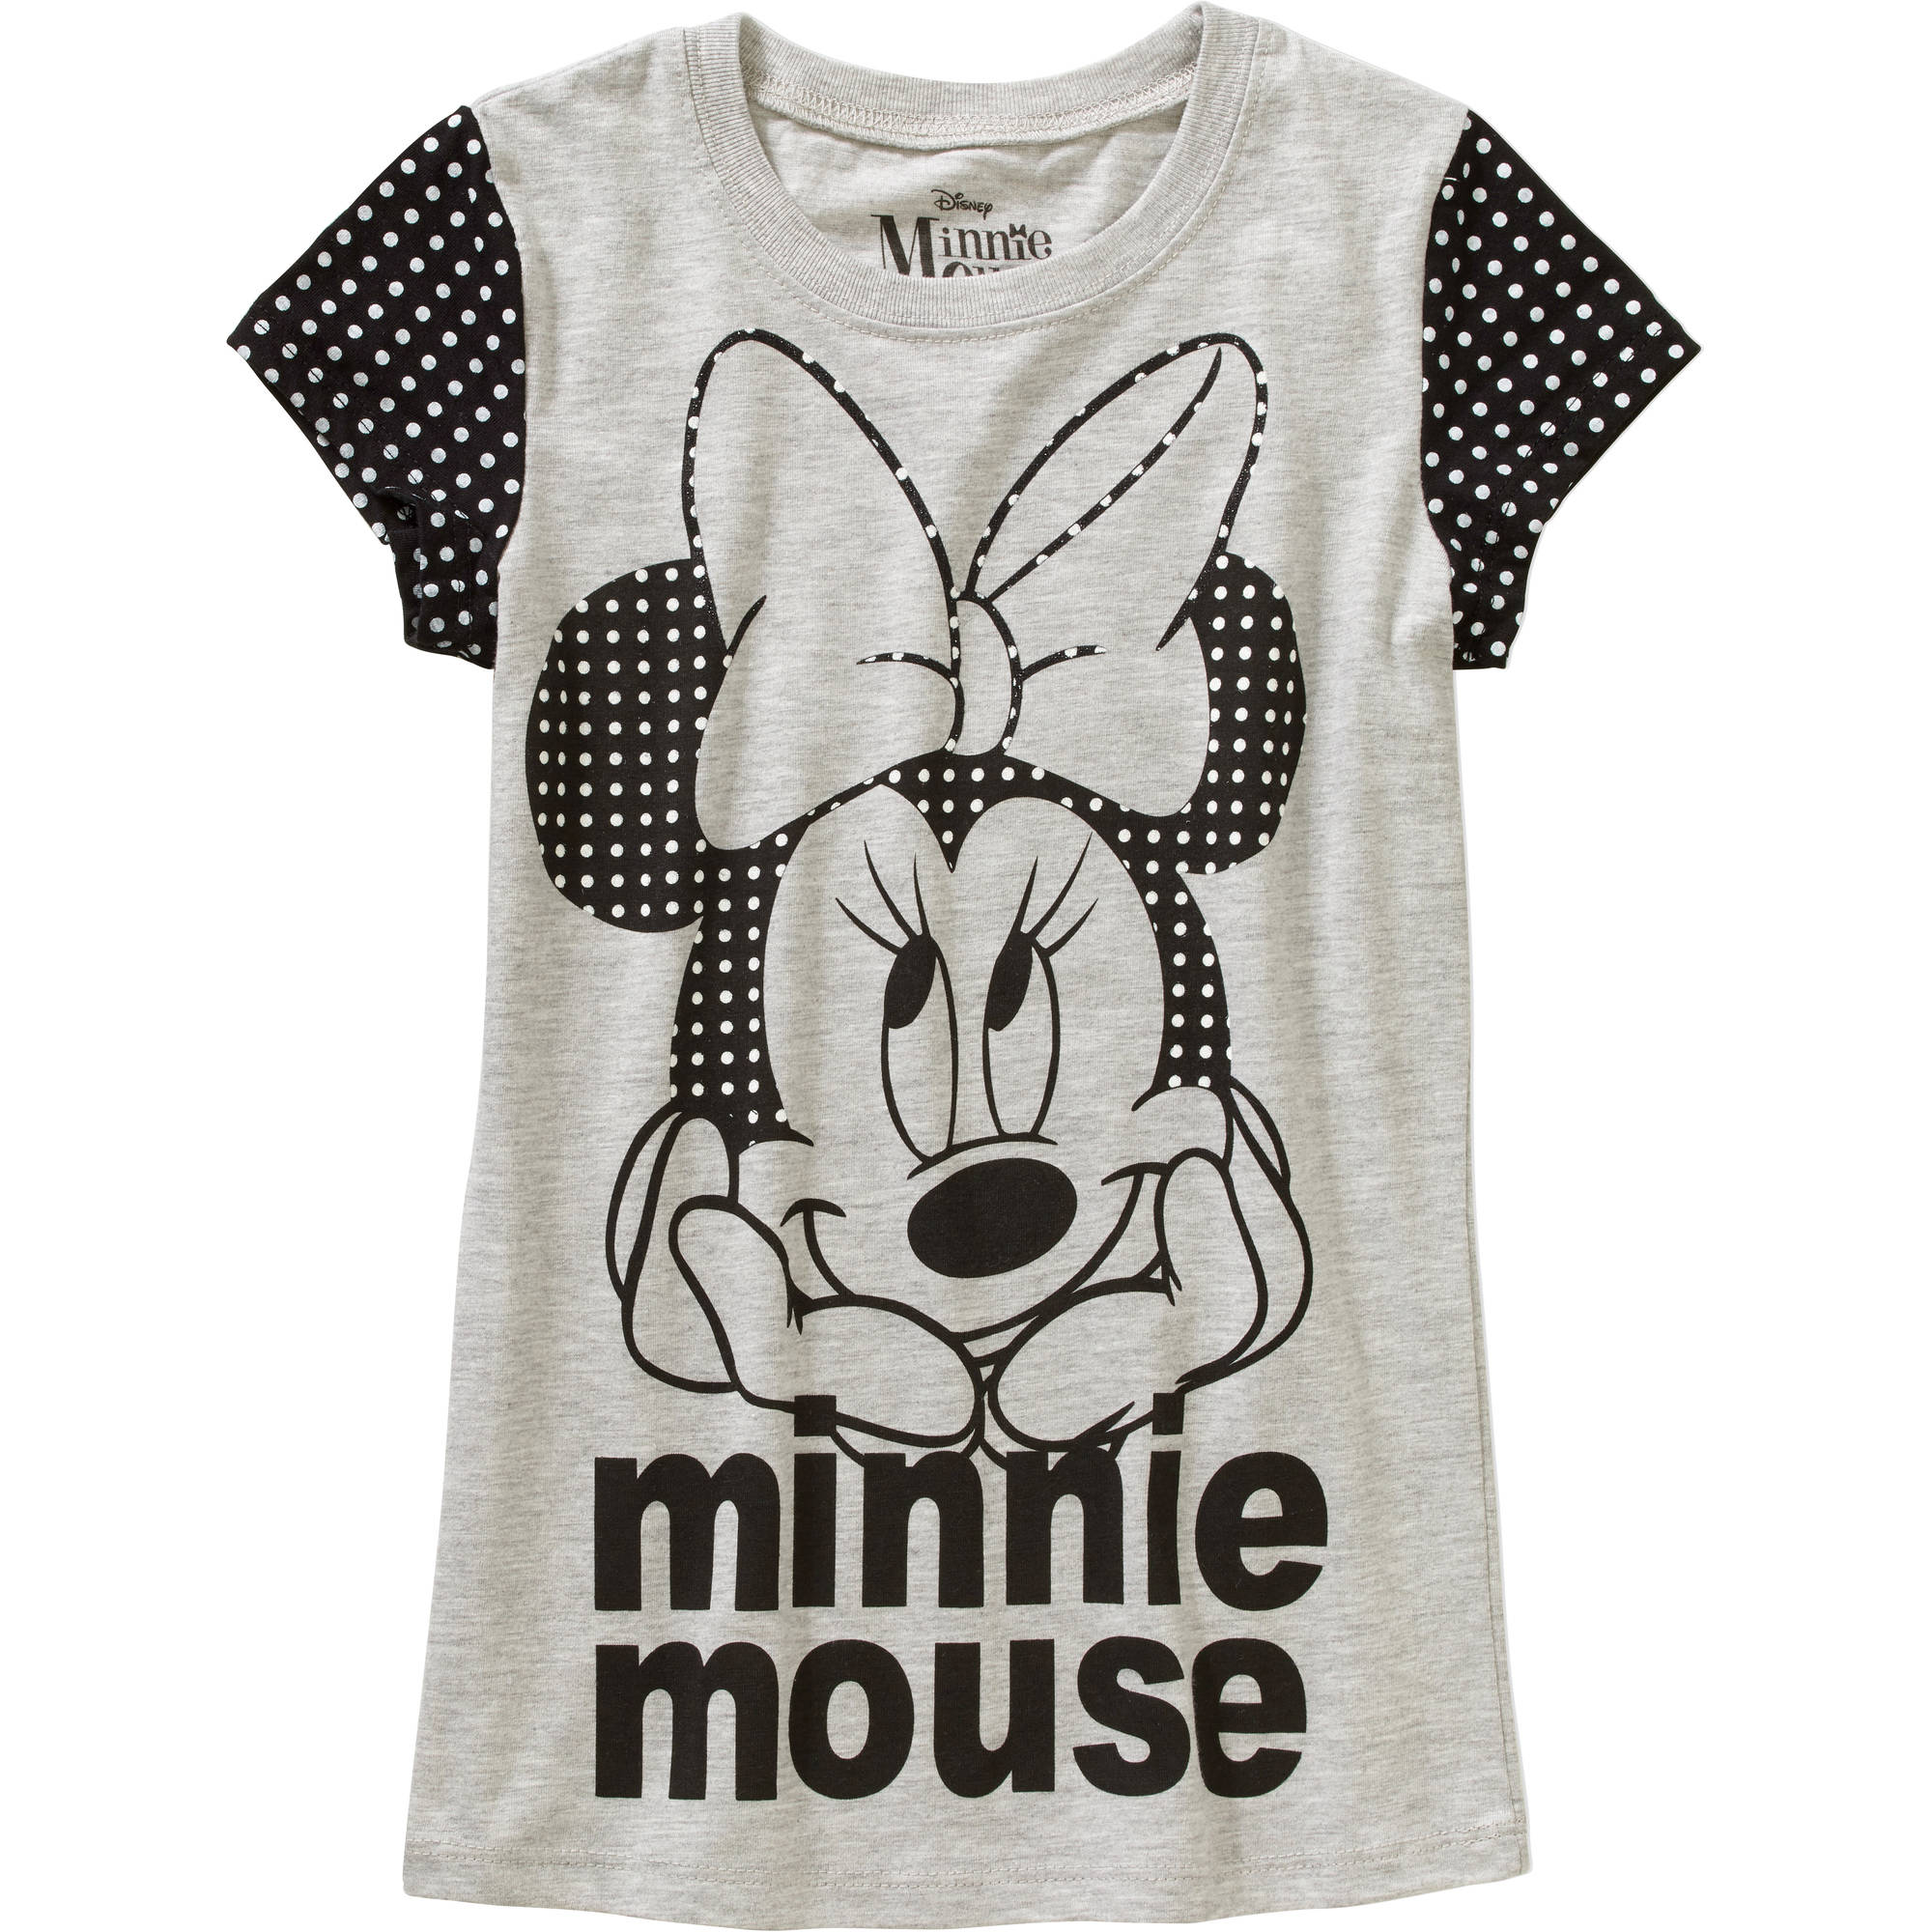 Minnie Mouse Girls' Polka Dots Minnie Short Sleeve Crew Neck Graphic Tee